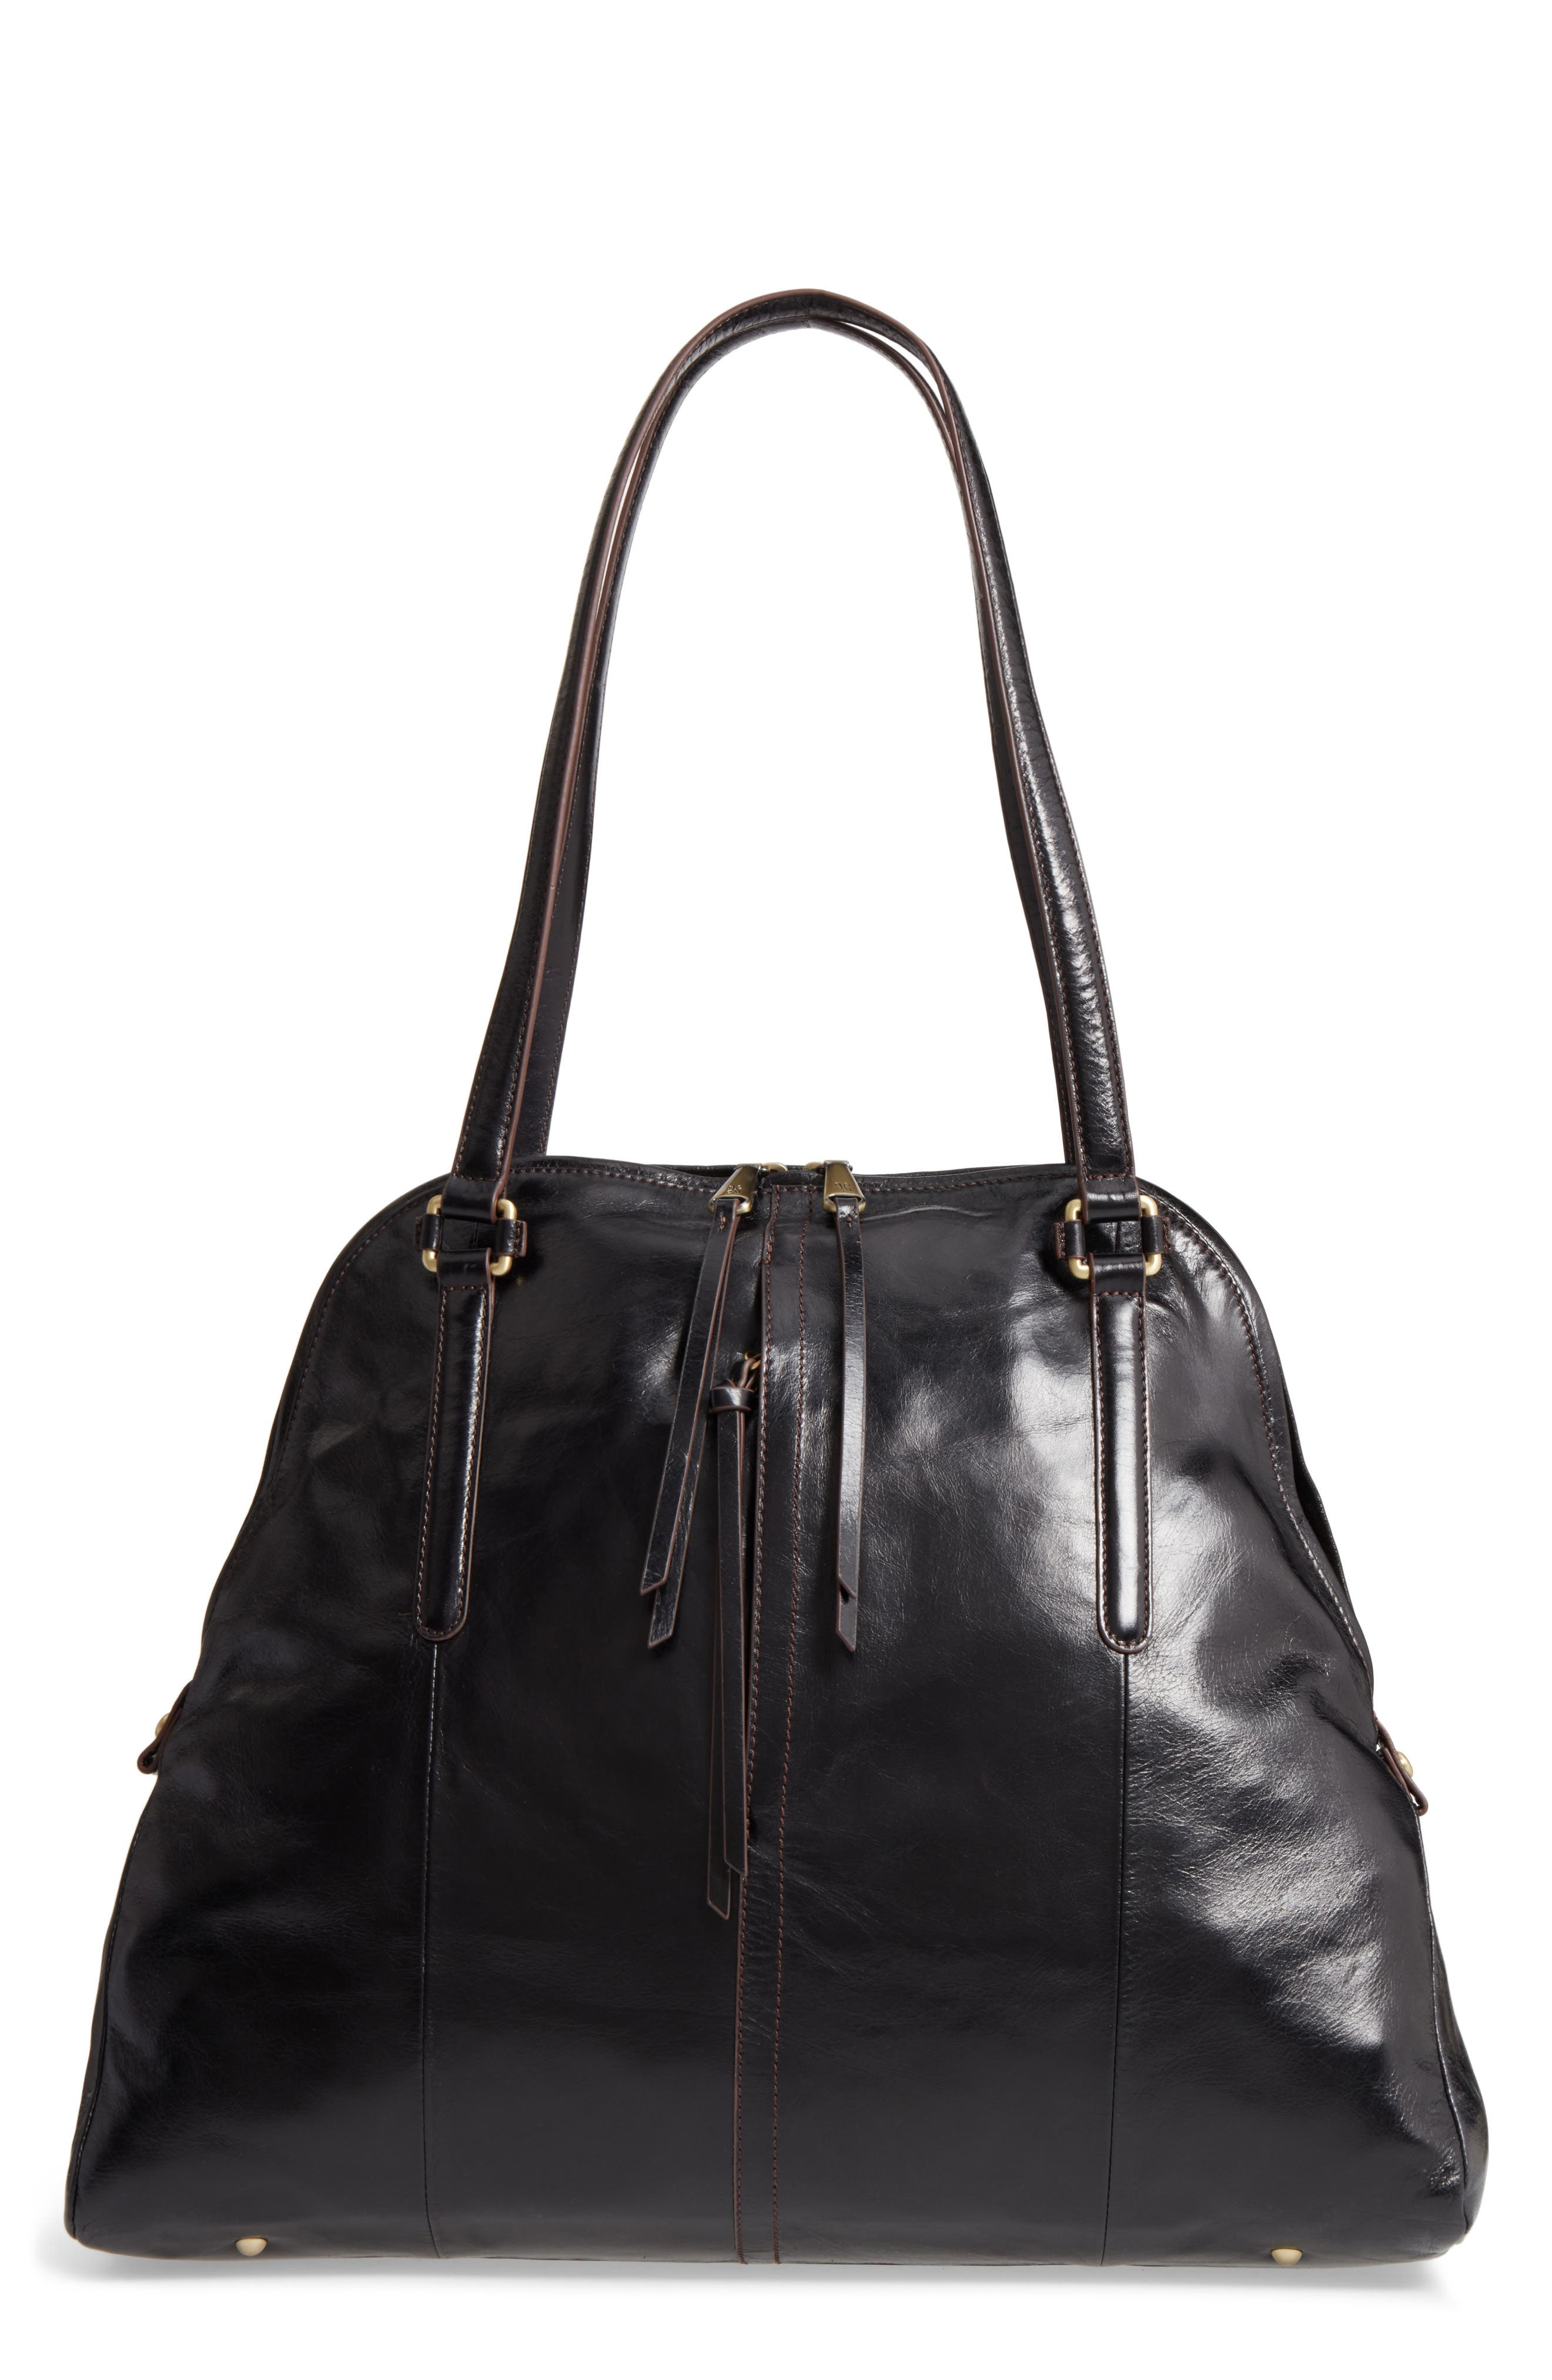 Delaney Calfskin Leather Tote,                             Main thumbnail 1, color,                             001